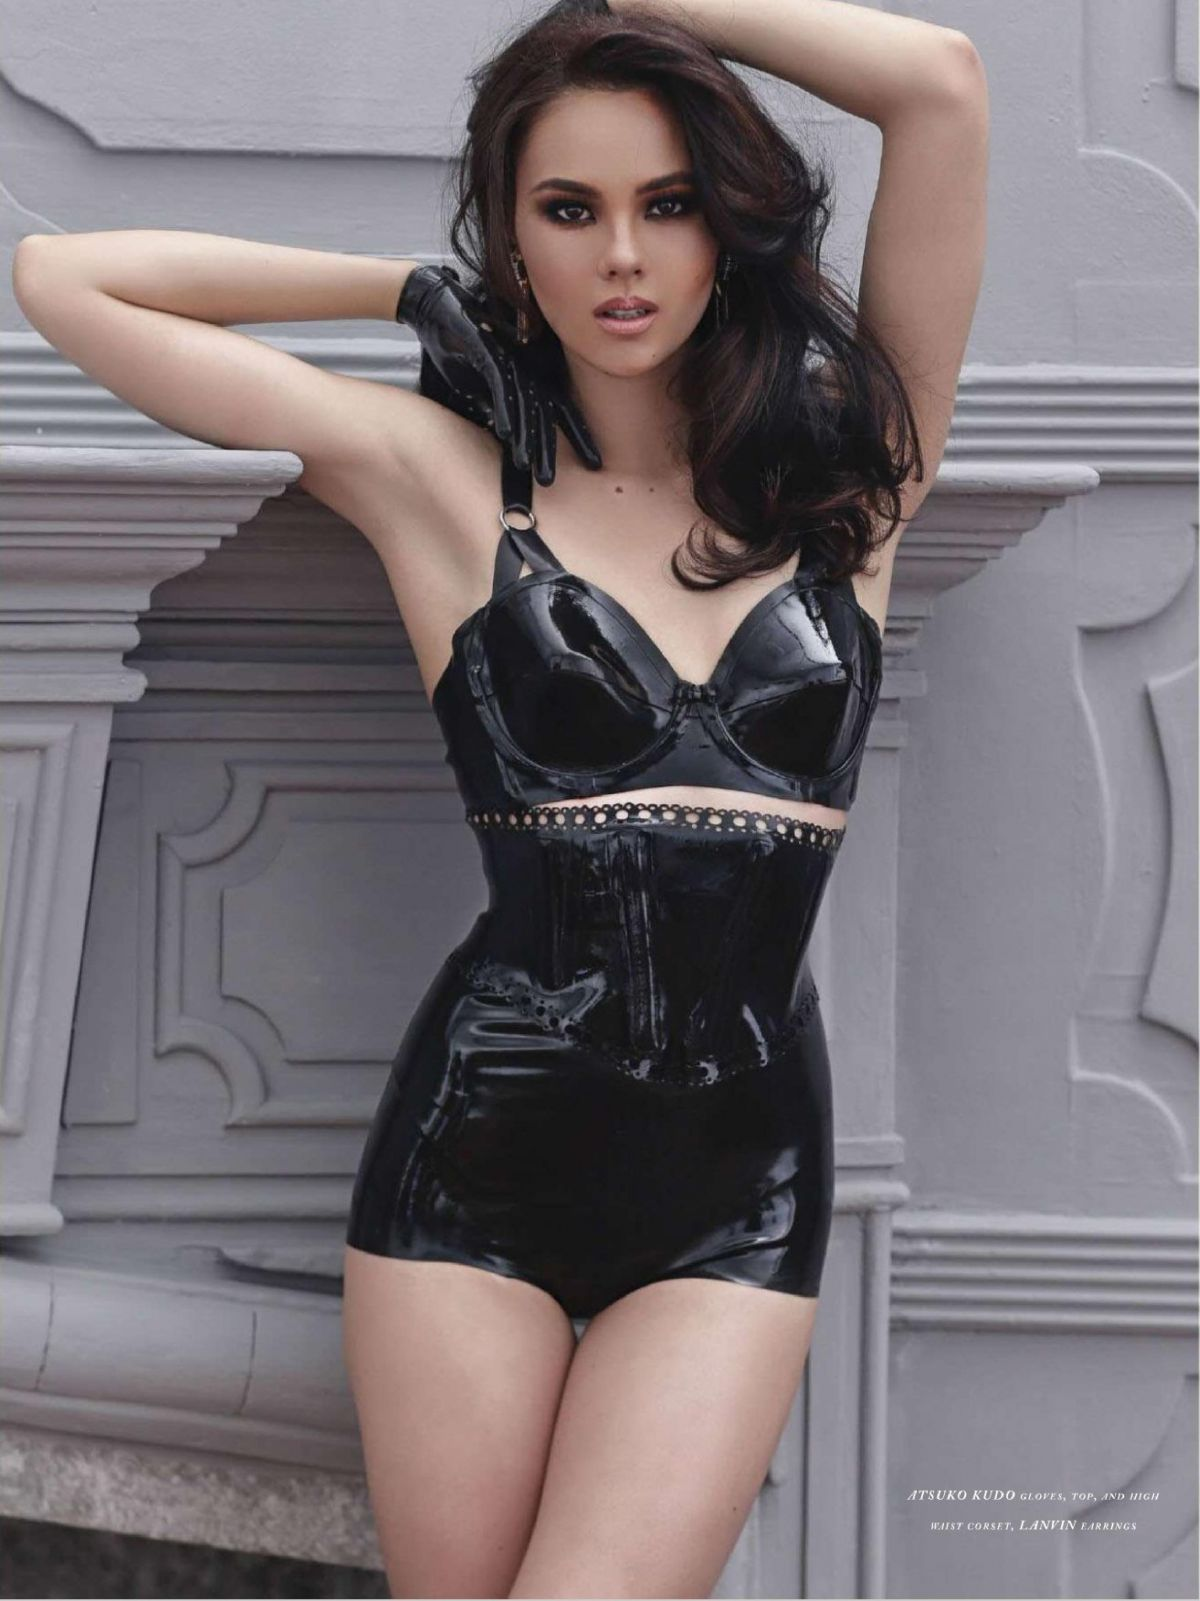 CATRIONA GRAY in Rogue Magazine, Phillippines January/February 2014 Issue